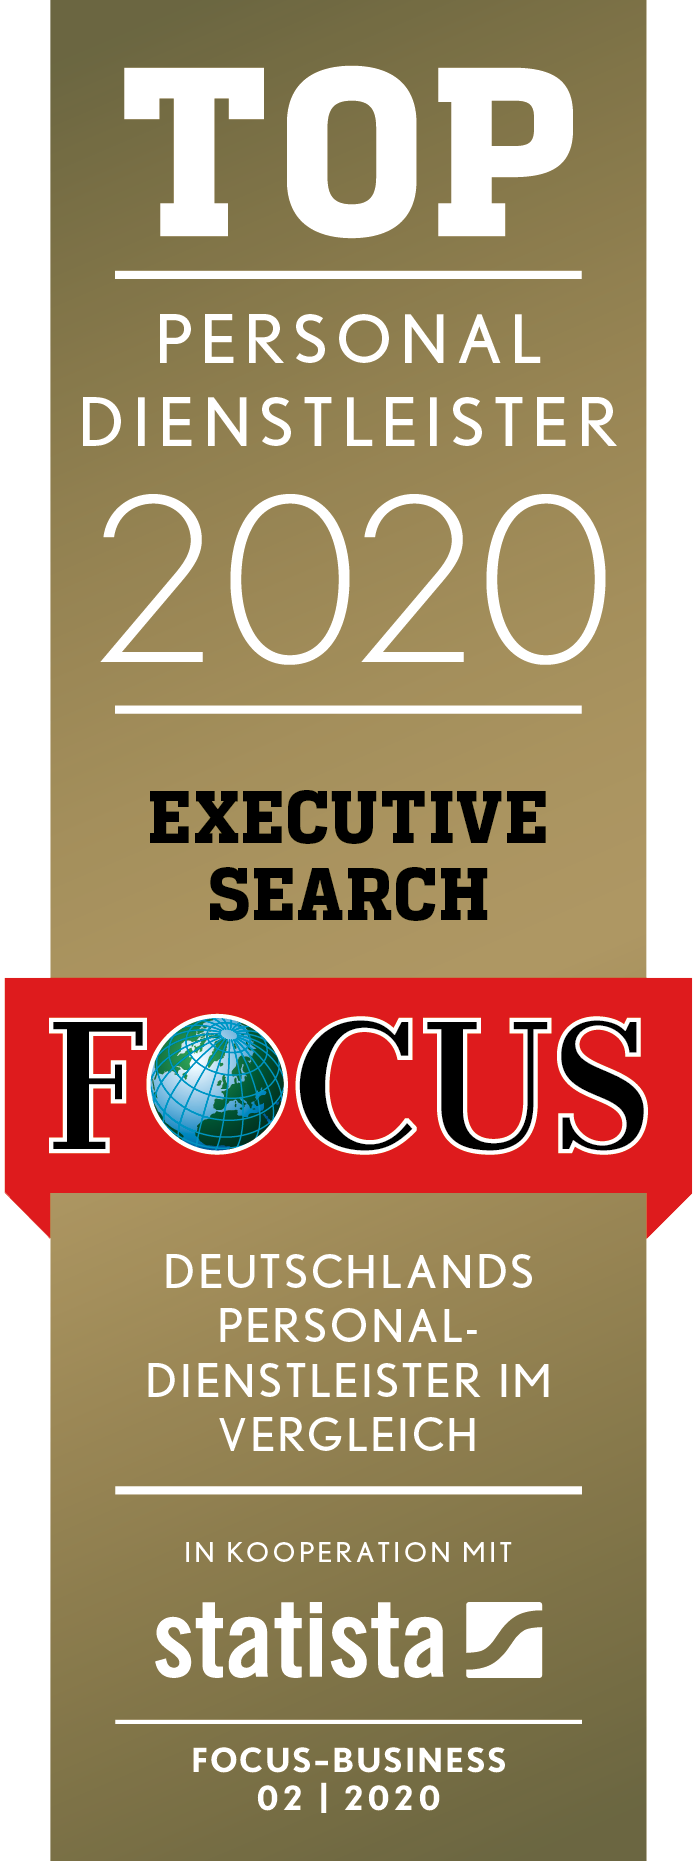 TOP Personaldienstleister ExecutiveSearch 2020